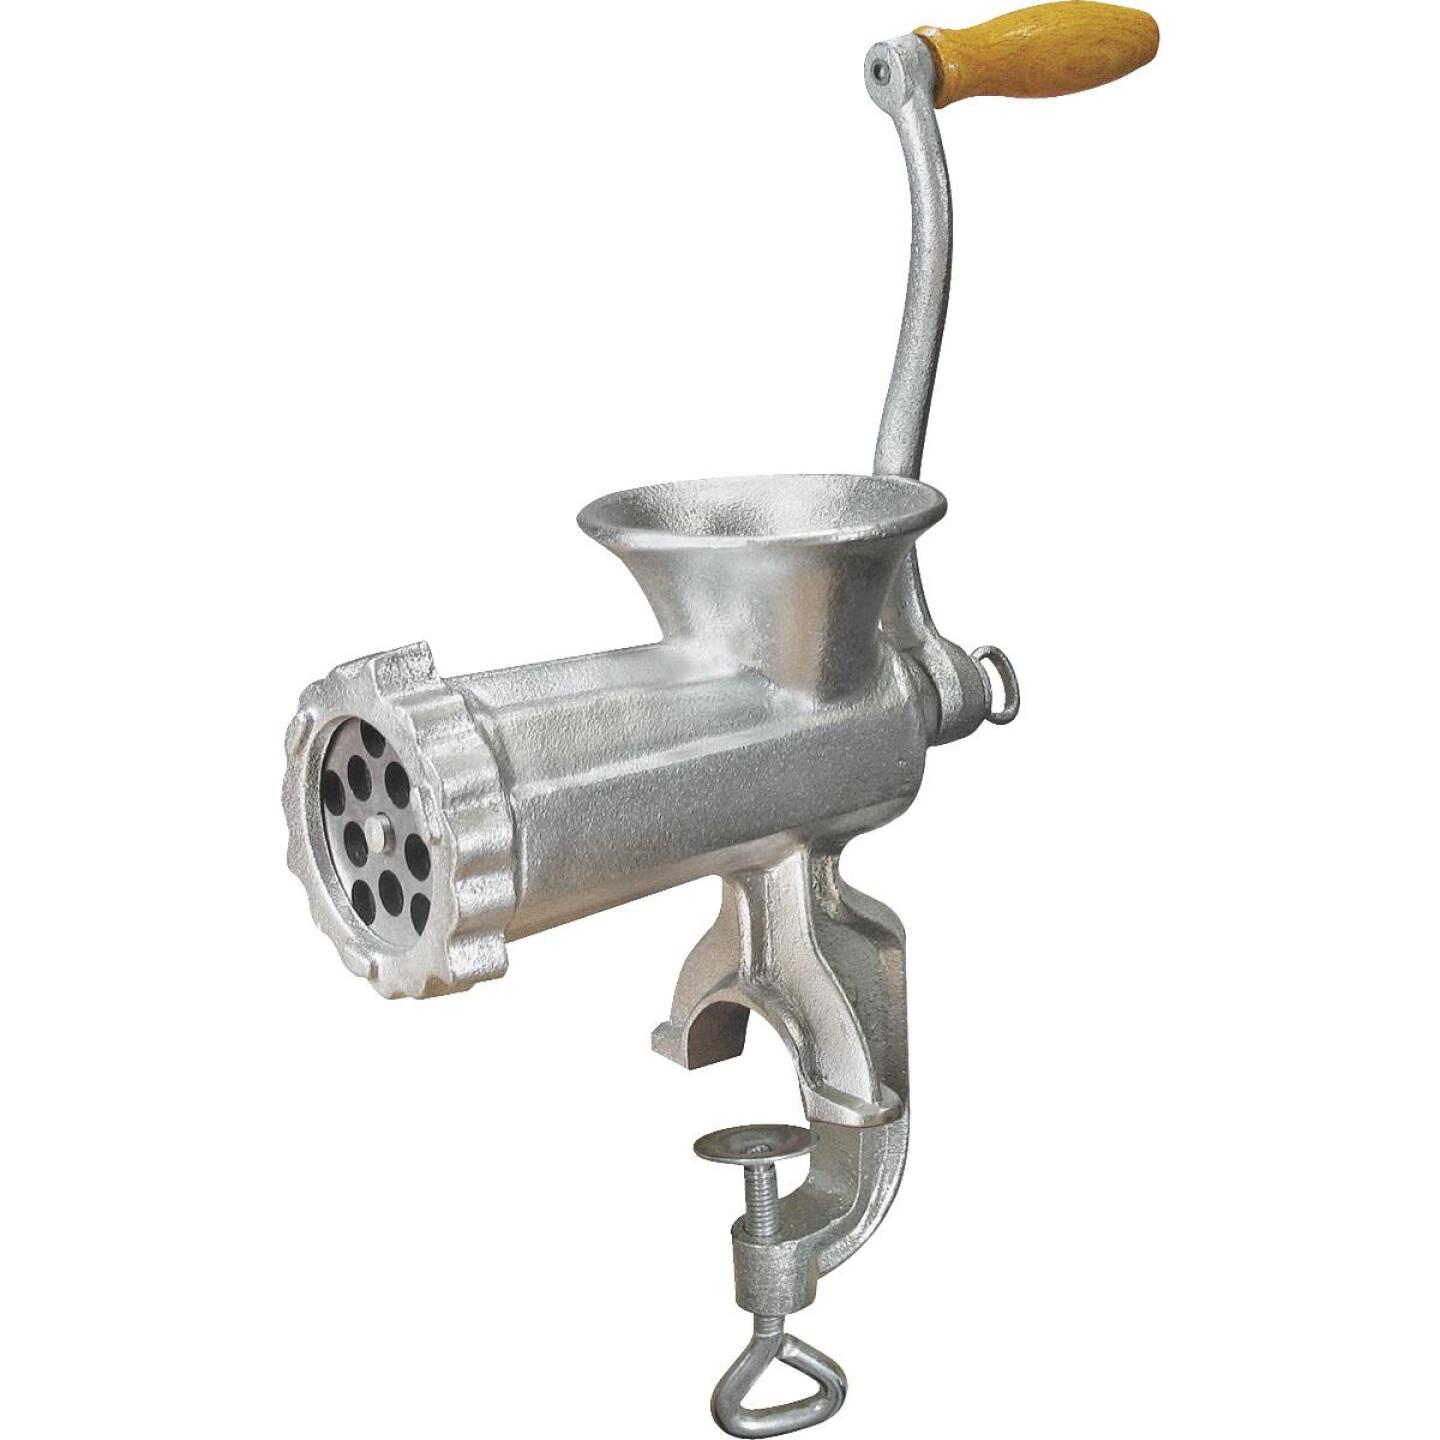 Weston #10 Deluxe Manual Heavy-Duty Meat Grinder (Tinned) Image 1